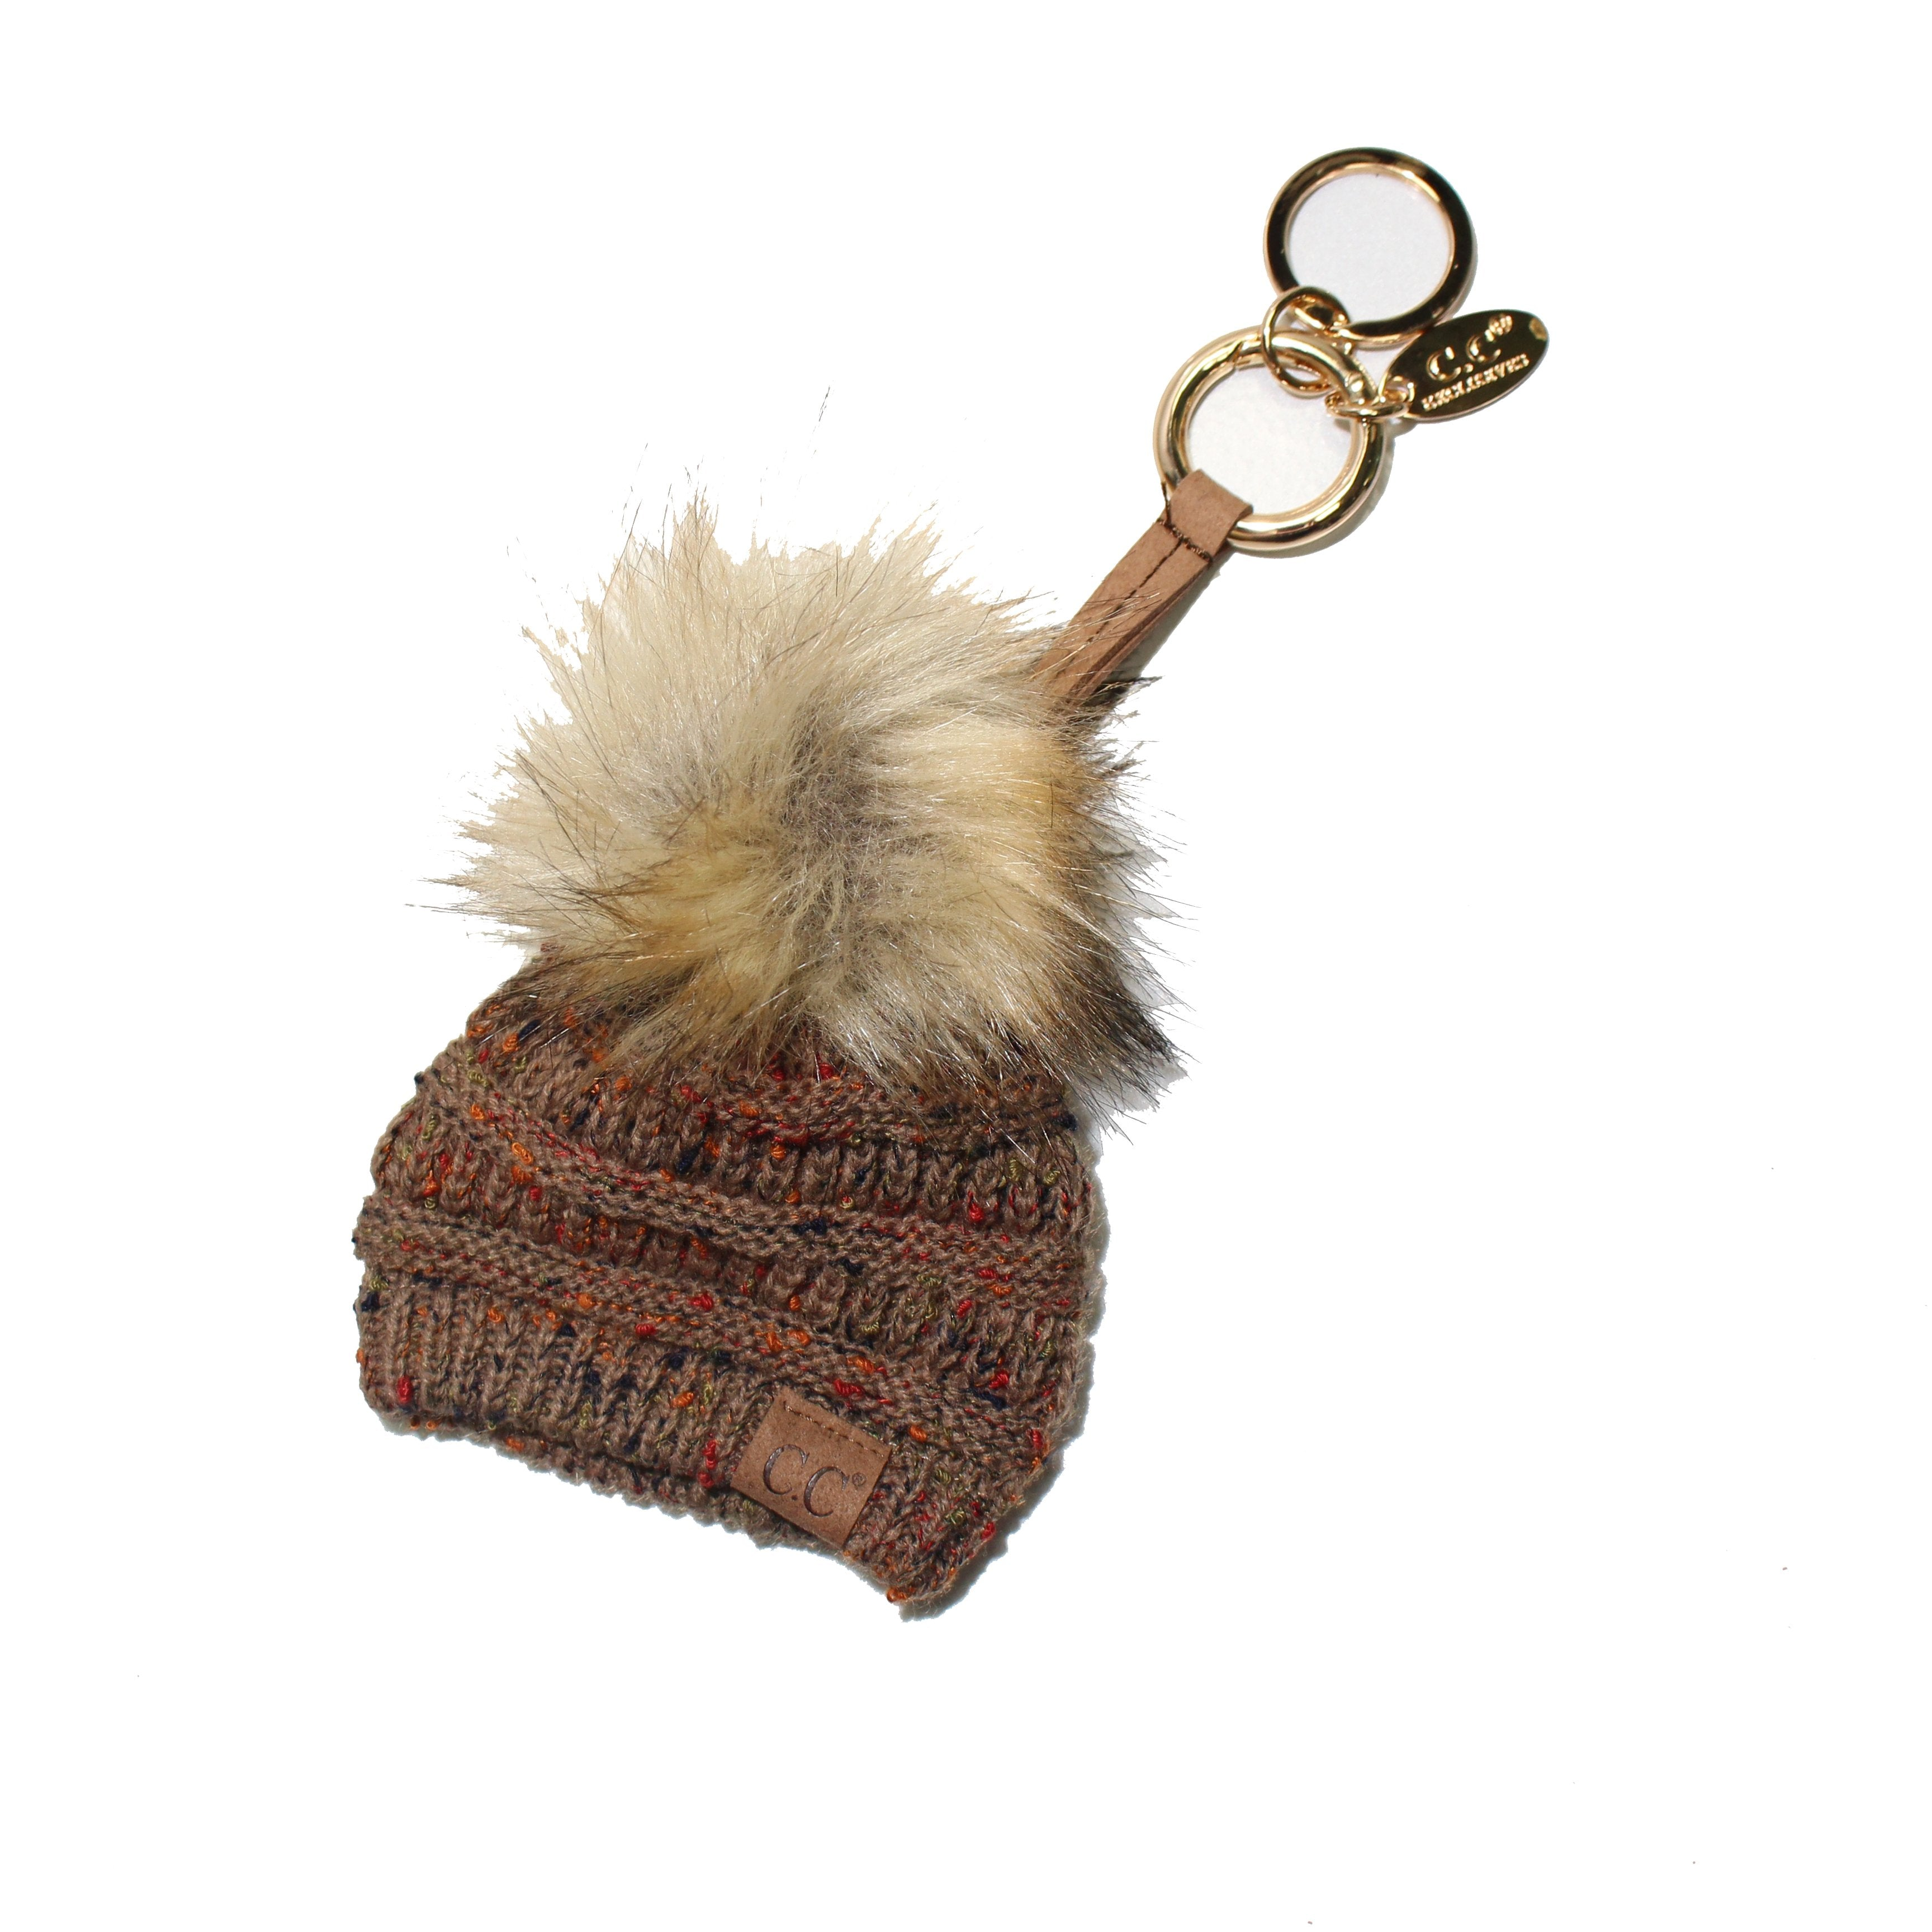 KB-33 Taupe Speckled Beanie Keychain